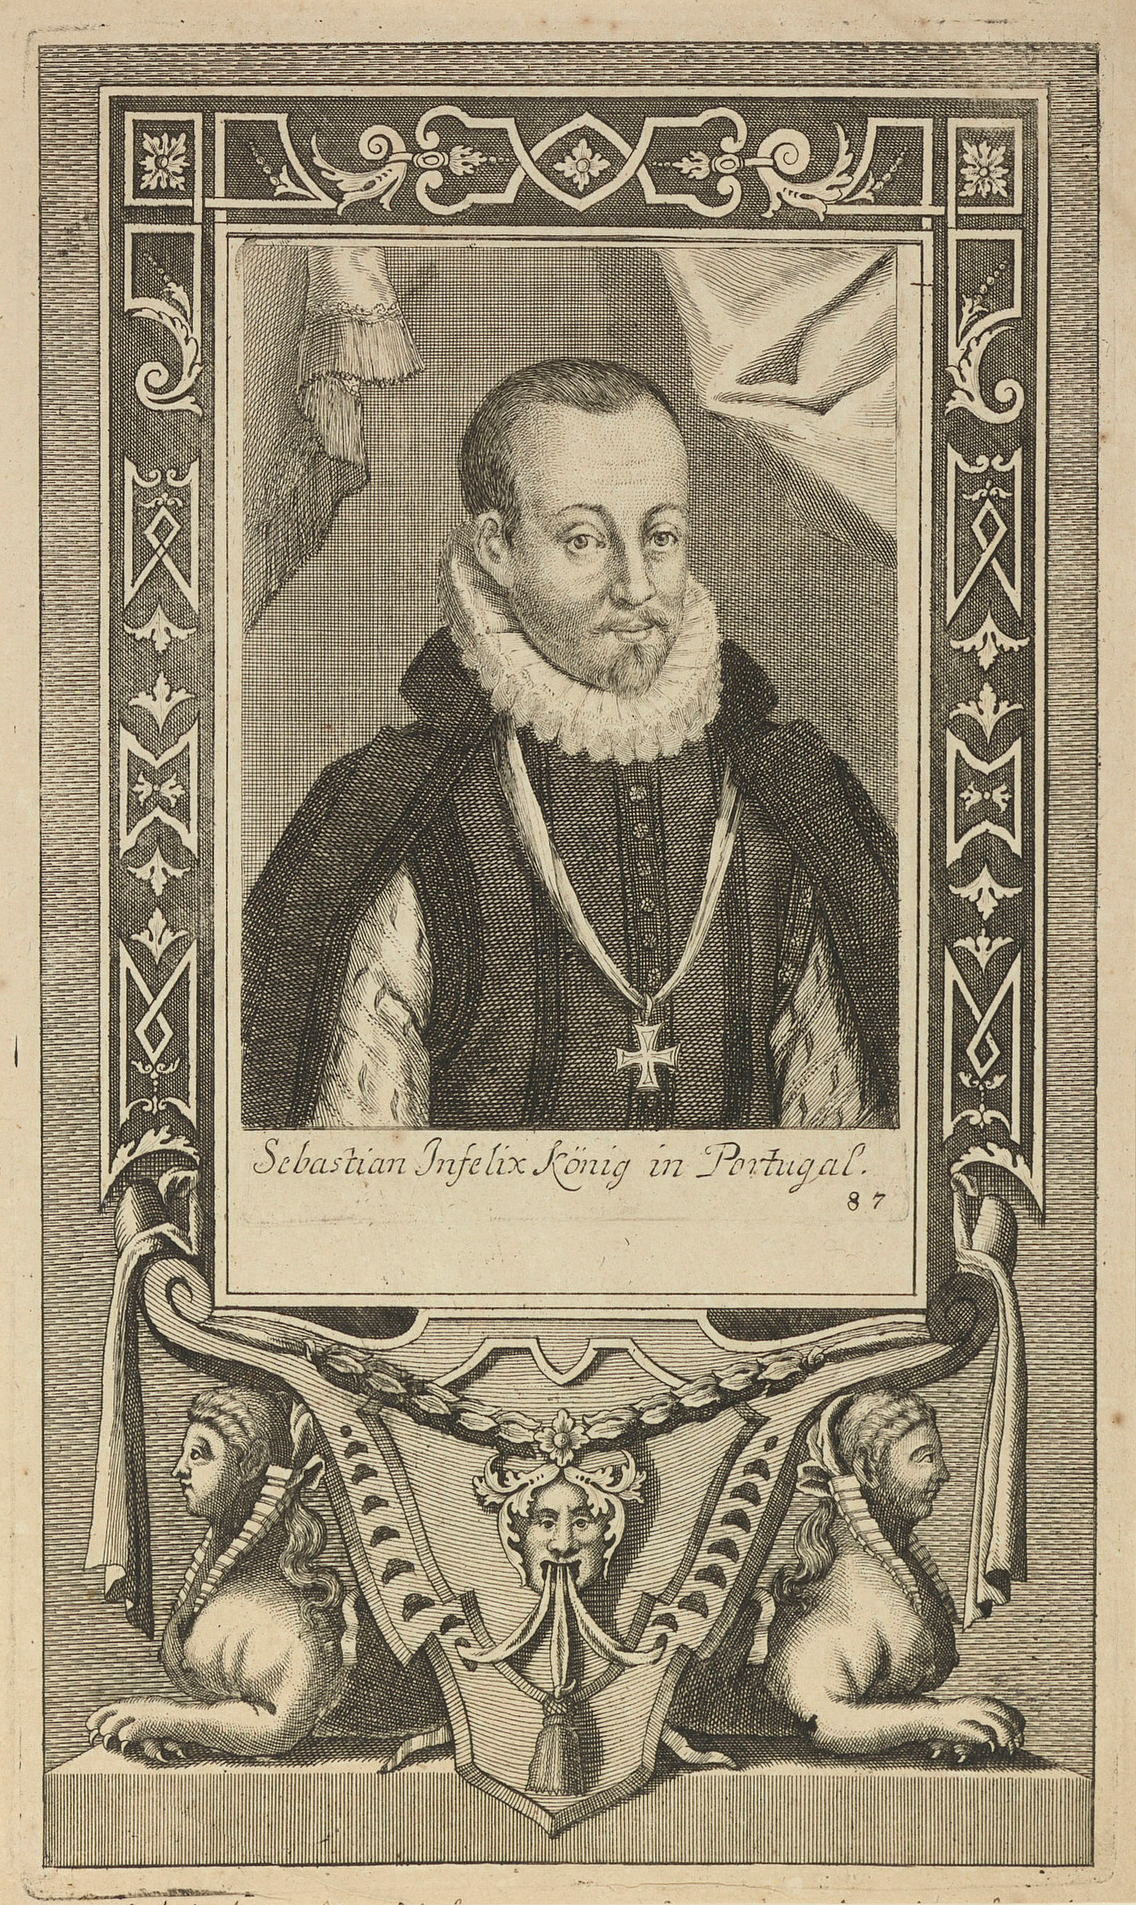 An image of Sebastian I of Portugal, an example of the 'King in the Mountain' trope.